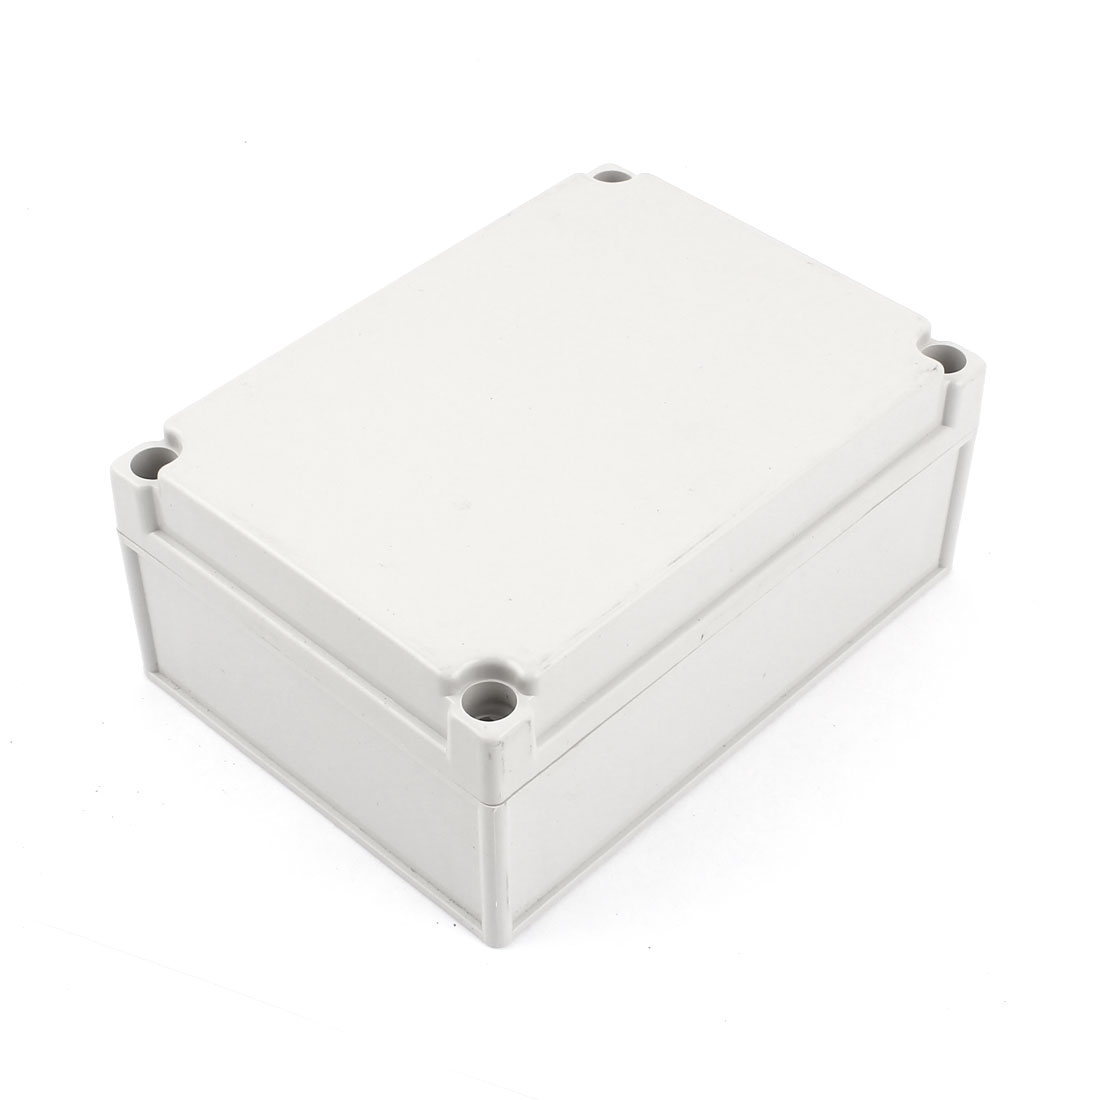 175mm x 125mm x 75mm Waterproof Plastic Sealed DIY Joint Electrical Junction Box